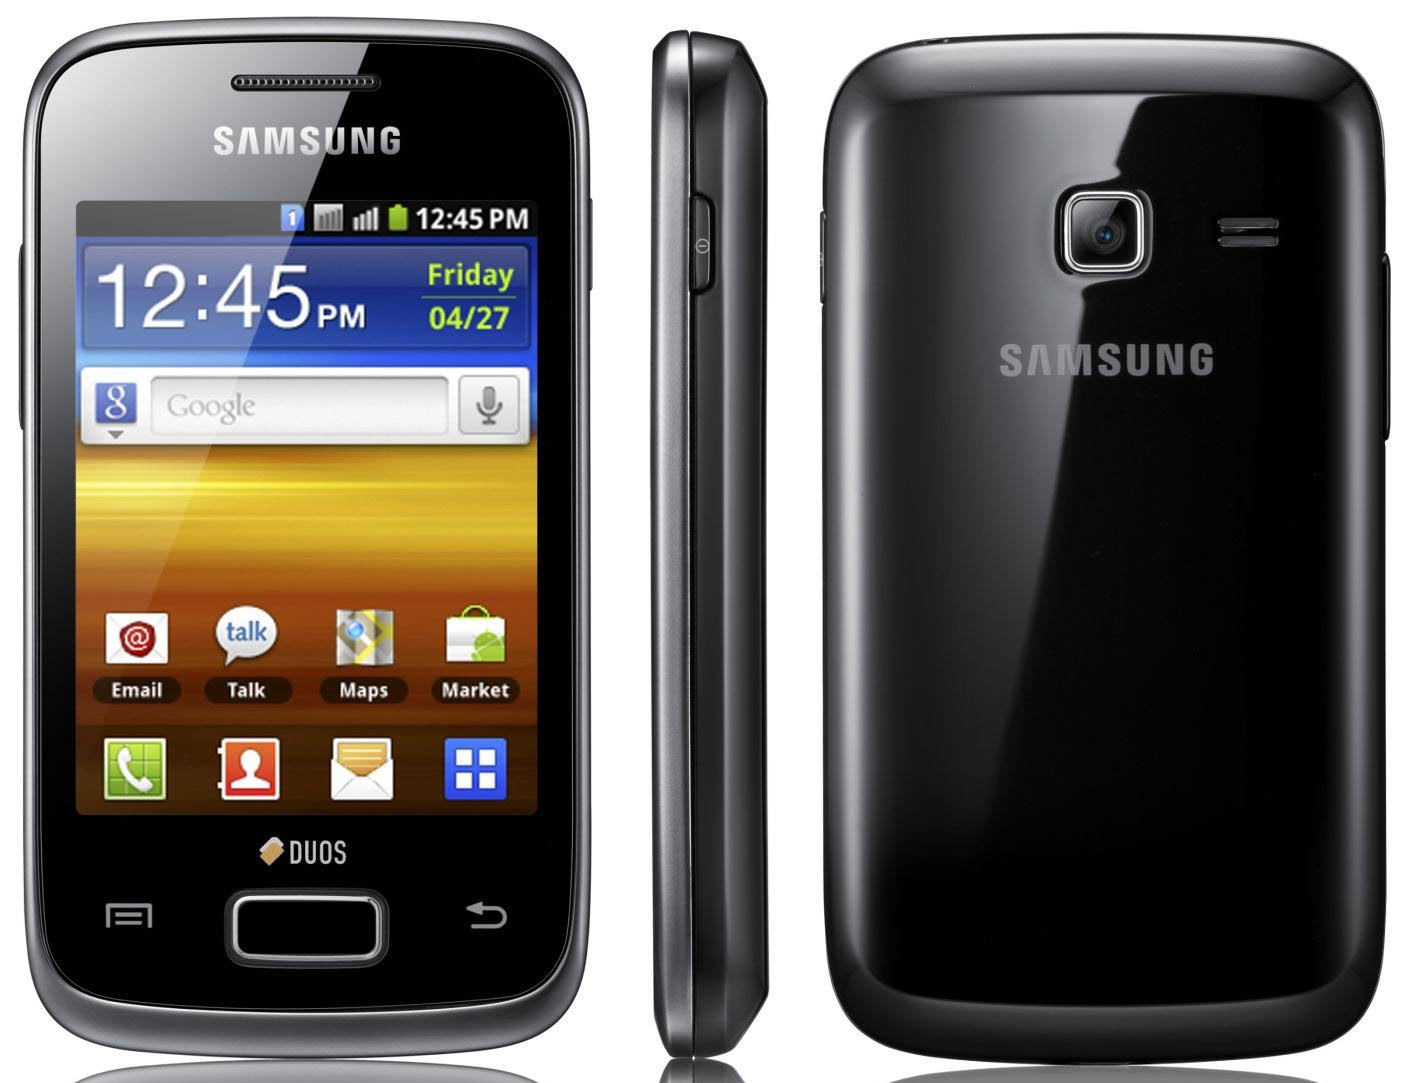 cara upgrade samsung Galaxy Y ke Android Jelly bean 4.2